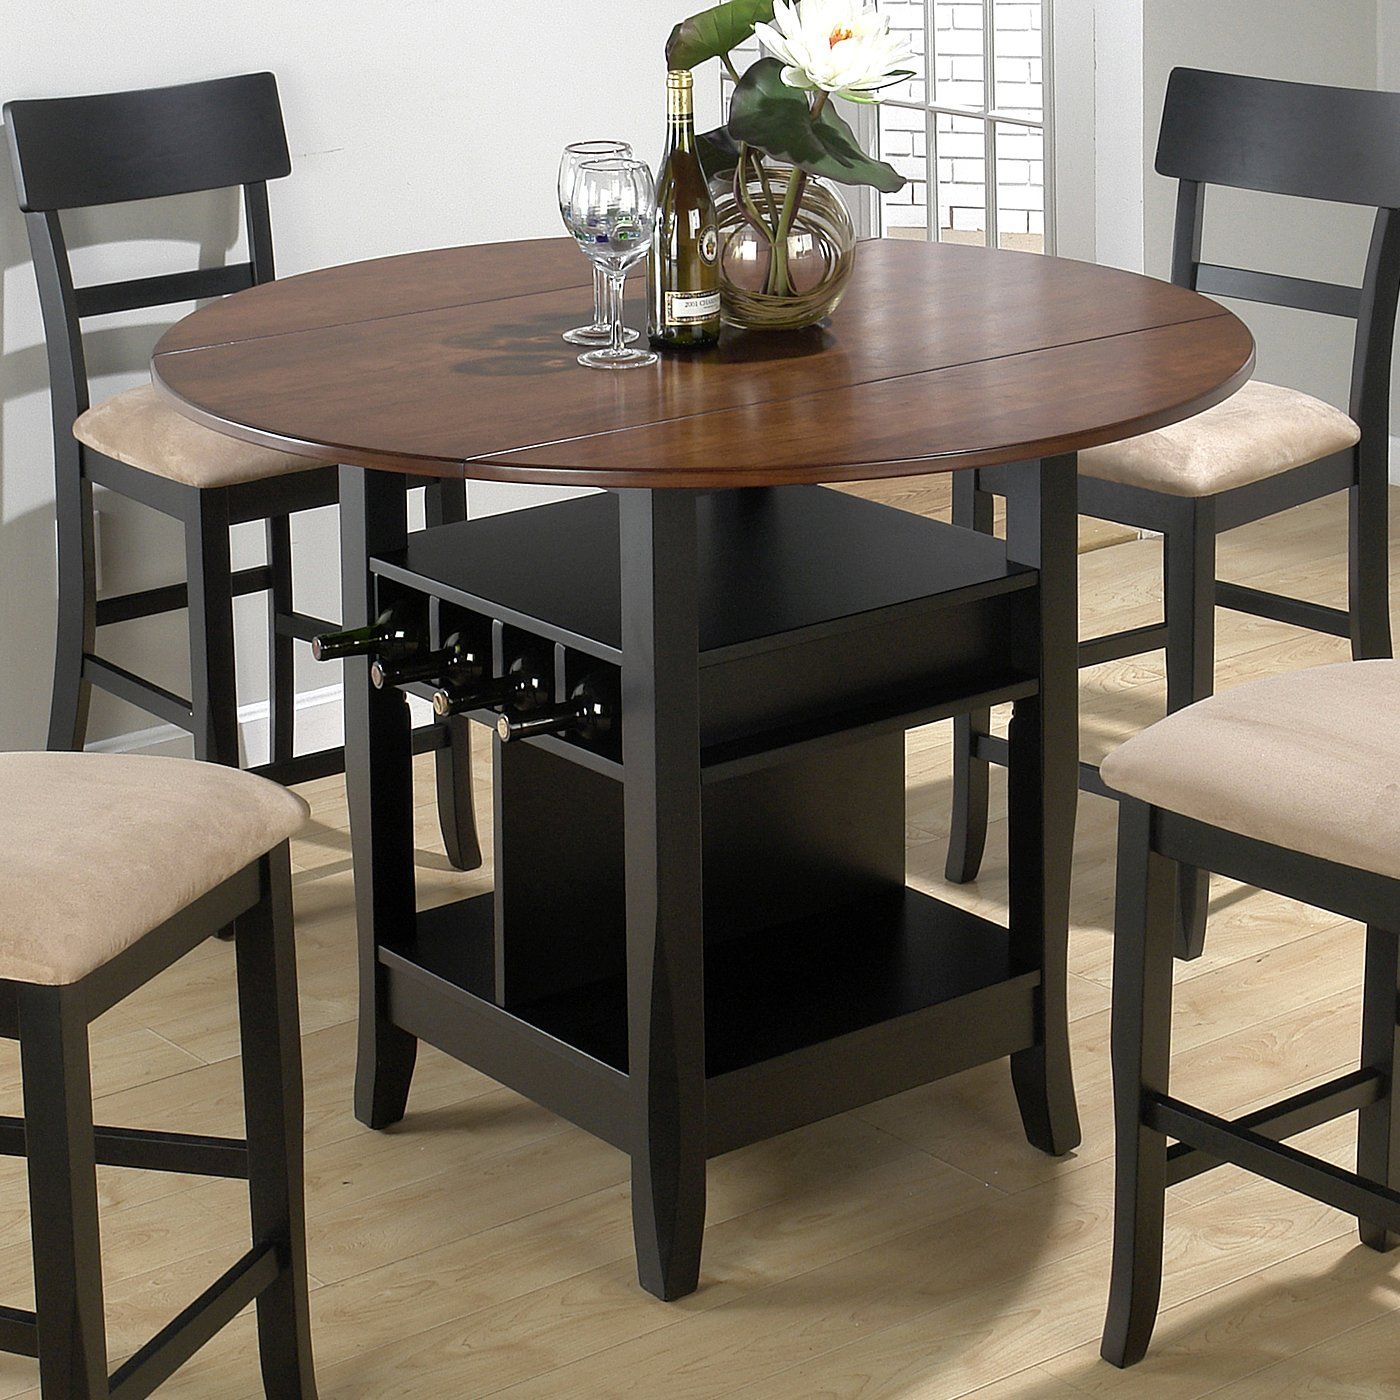 Jofran 218 48 Counter Height Dining Table  ATG Stores Furniture